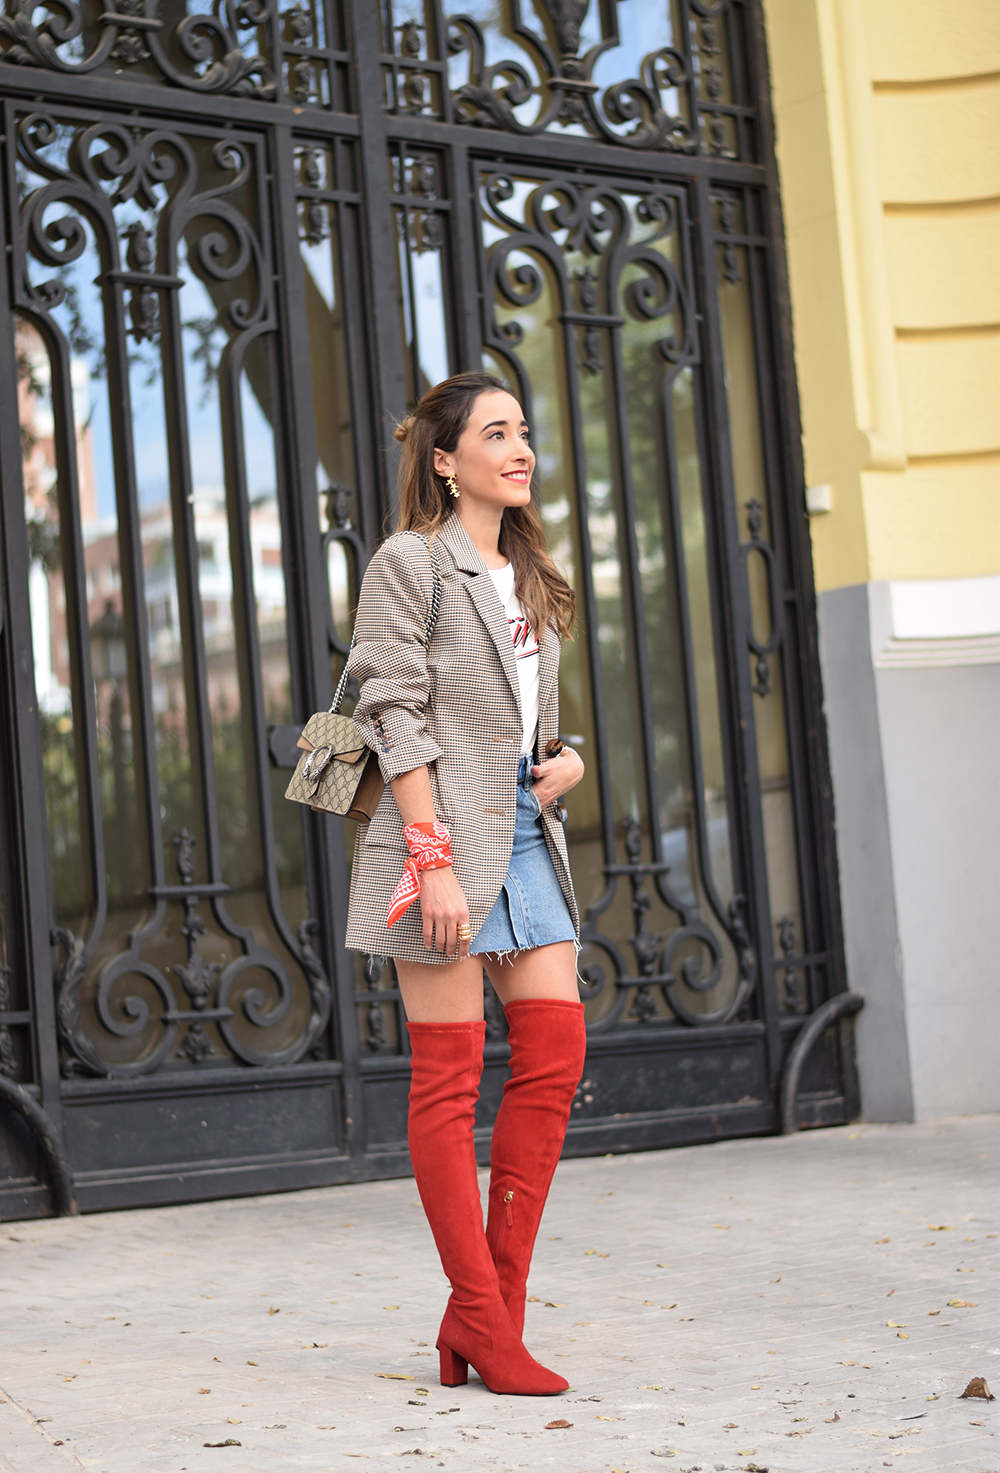 Houndstooth blazer denim skirt gucci bag red over the knee boots autumn outfit style fashion10